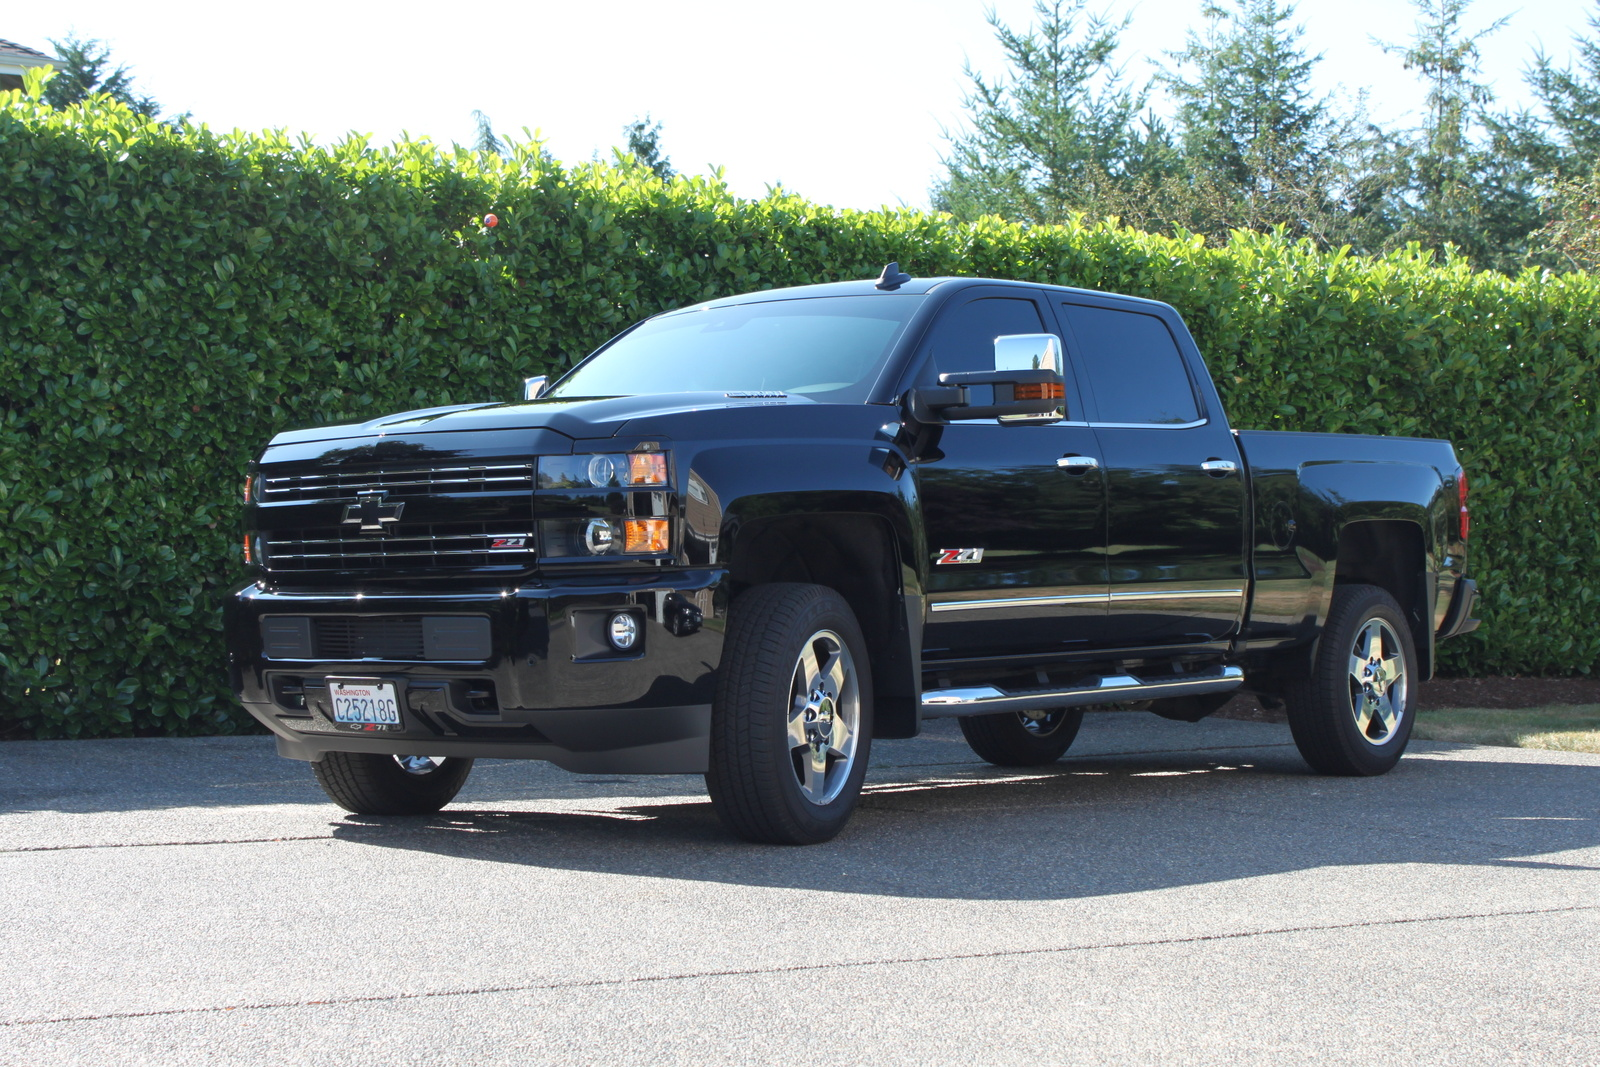 chevrolet silverado 2500hd questions towing capacity. Black Bedroom Furniture Sets. Home Design Ideas